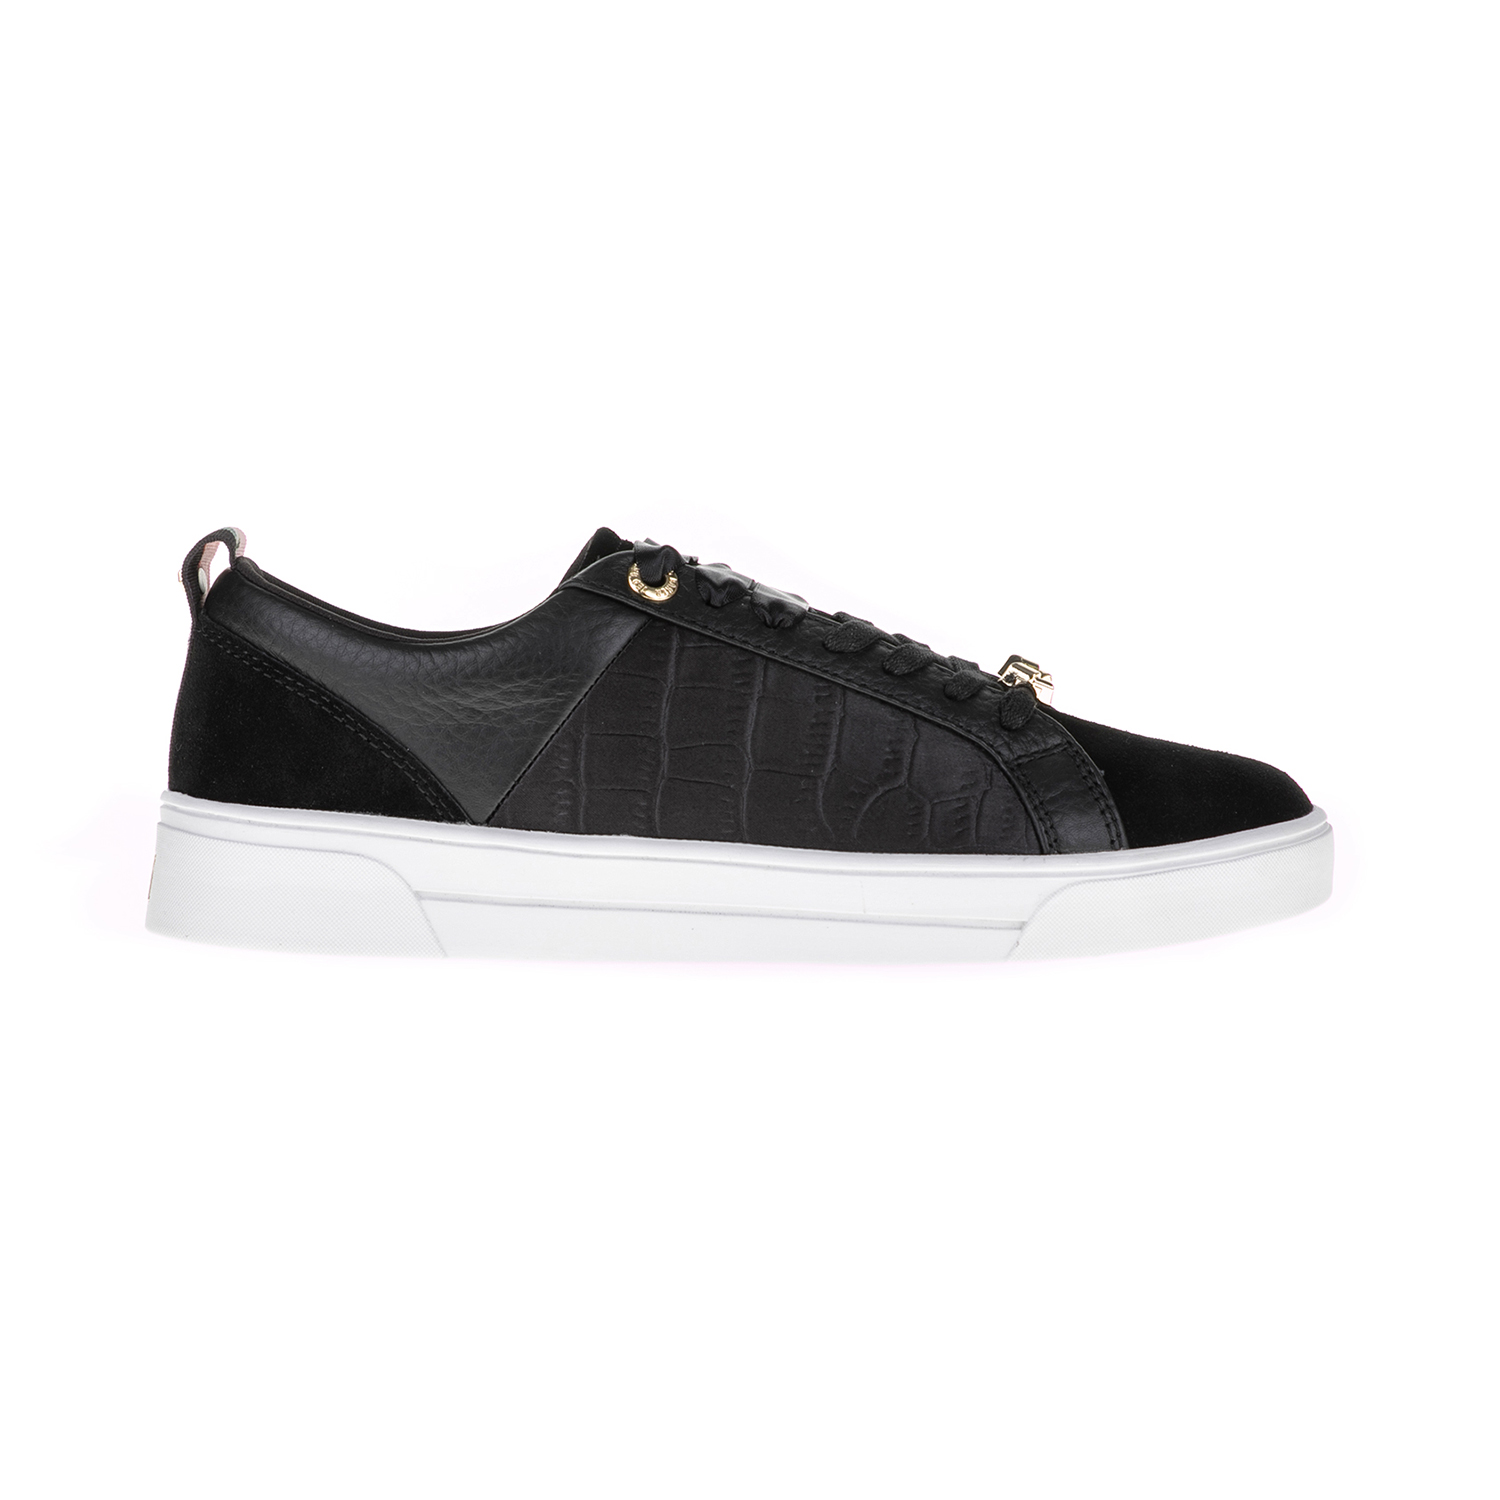 TED BAKER – Γυναικεία sneakers KULEI TED BAKER μαύρα